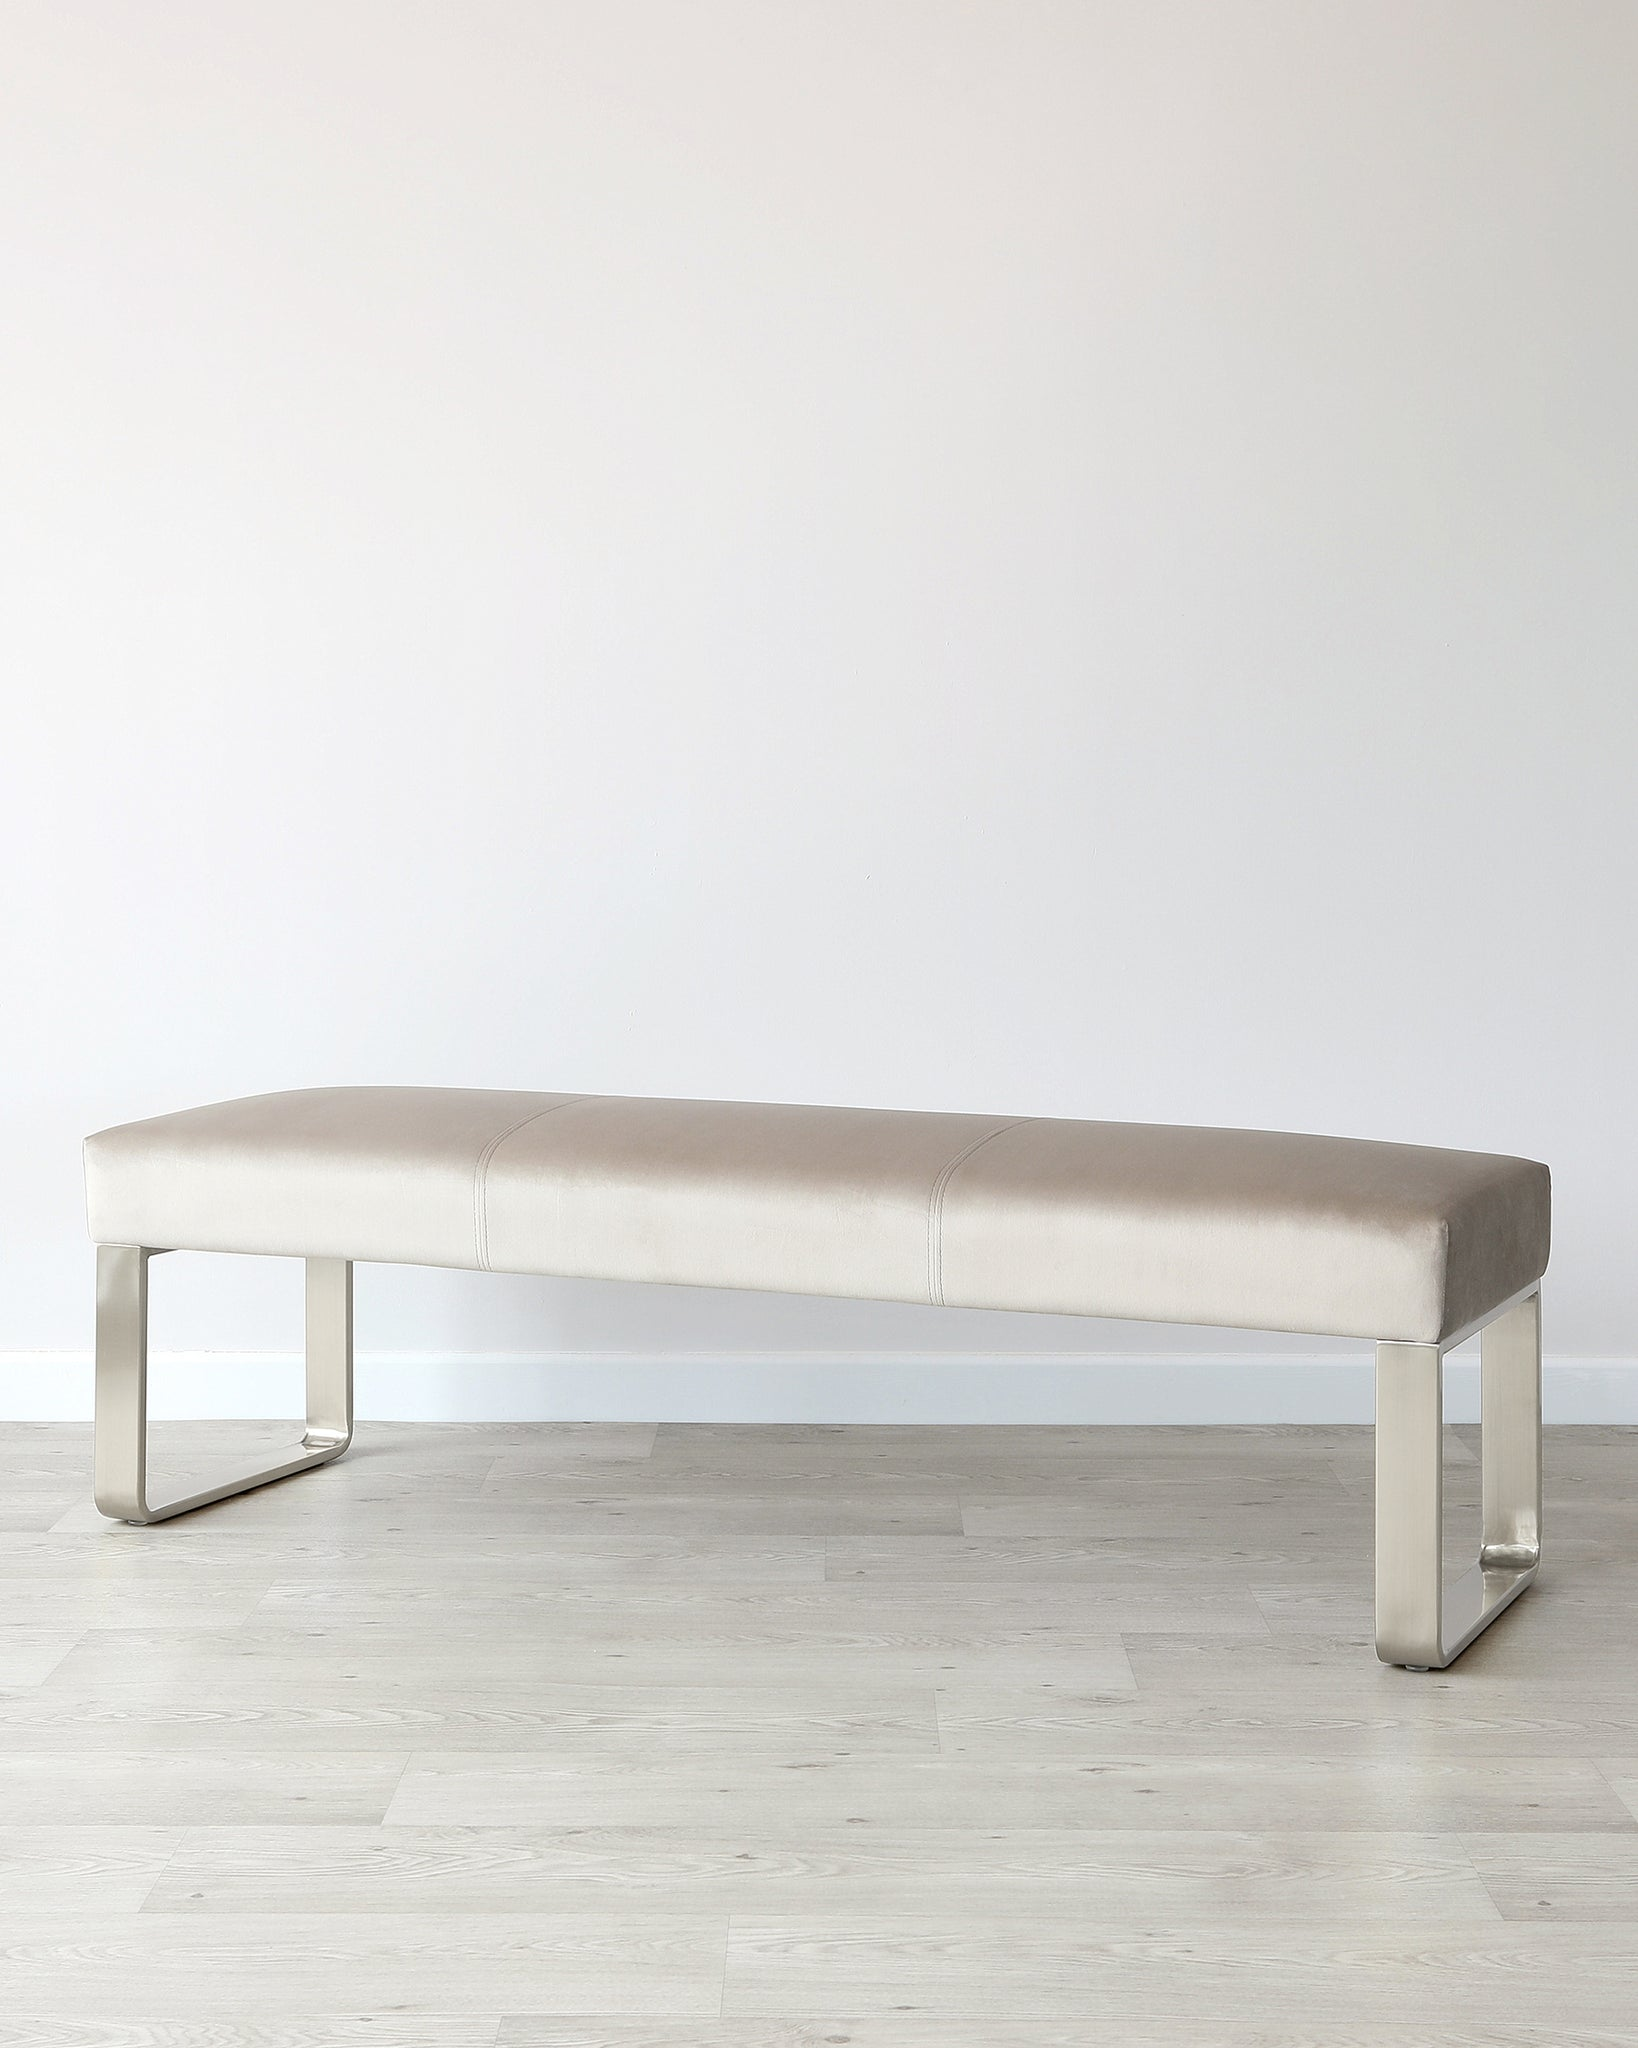 Ophelia 3 Seater Champagne Velvet & Stainless Steel Bench Without Backrest